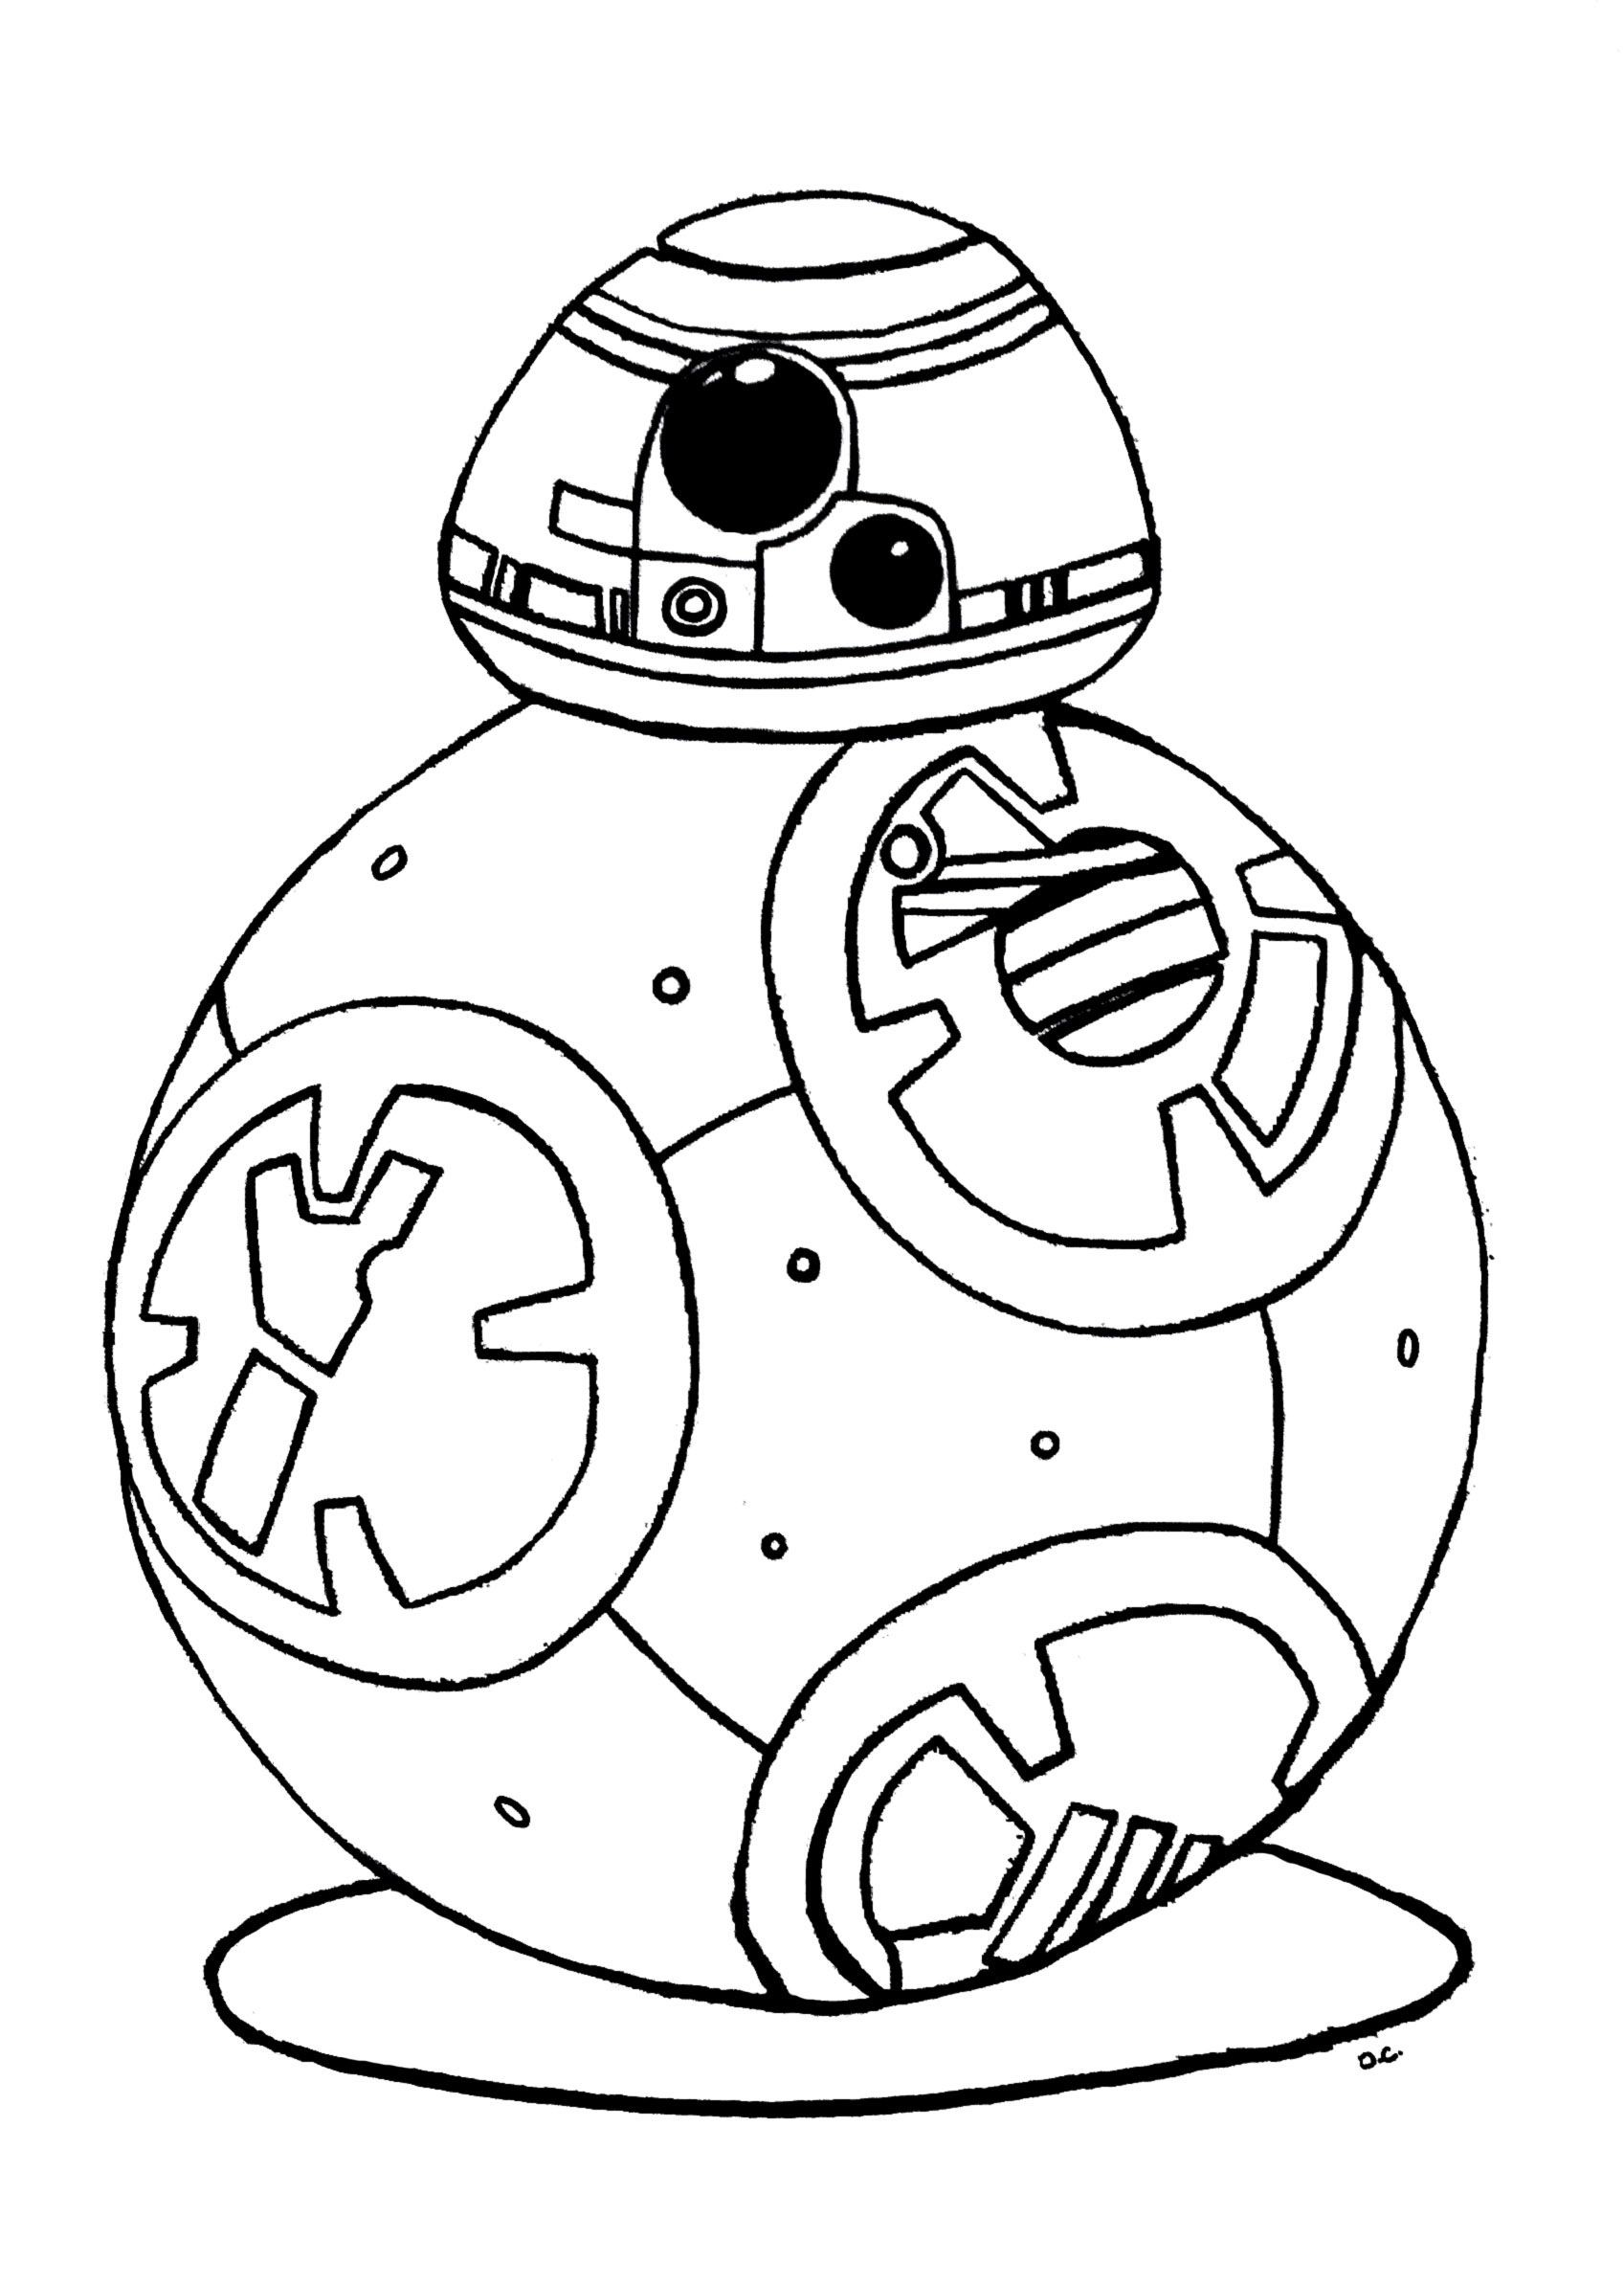 star wars free coloring pages star wars free to color for kids star wars kids coloring star pages coloring wars free